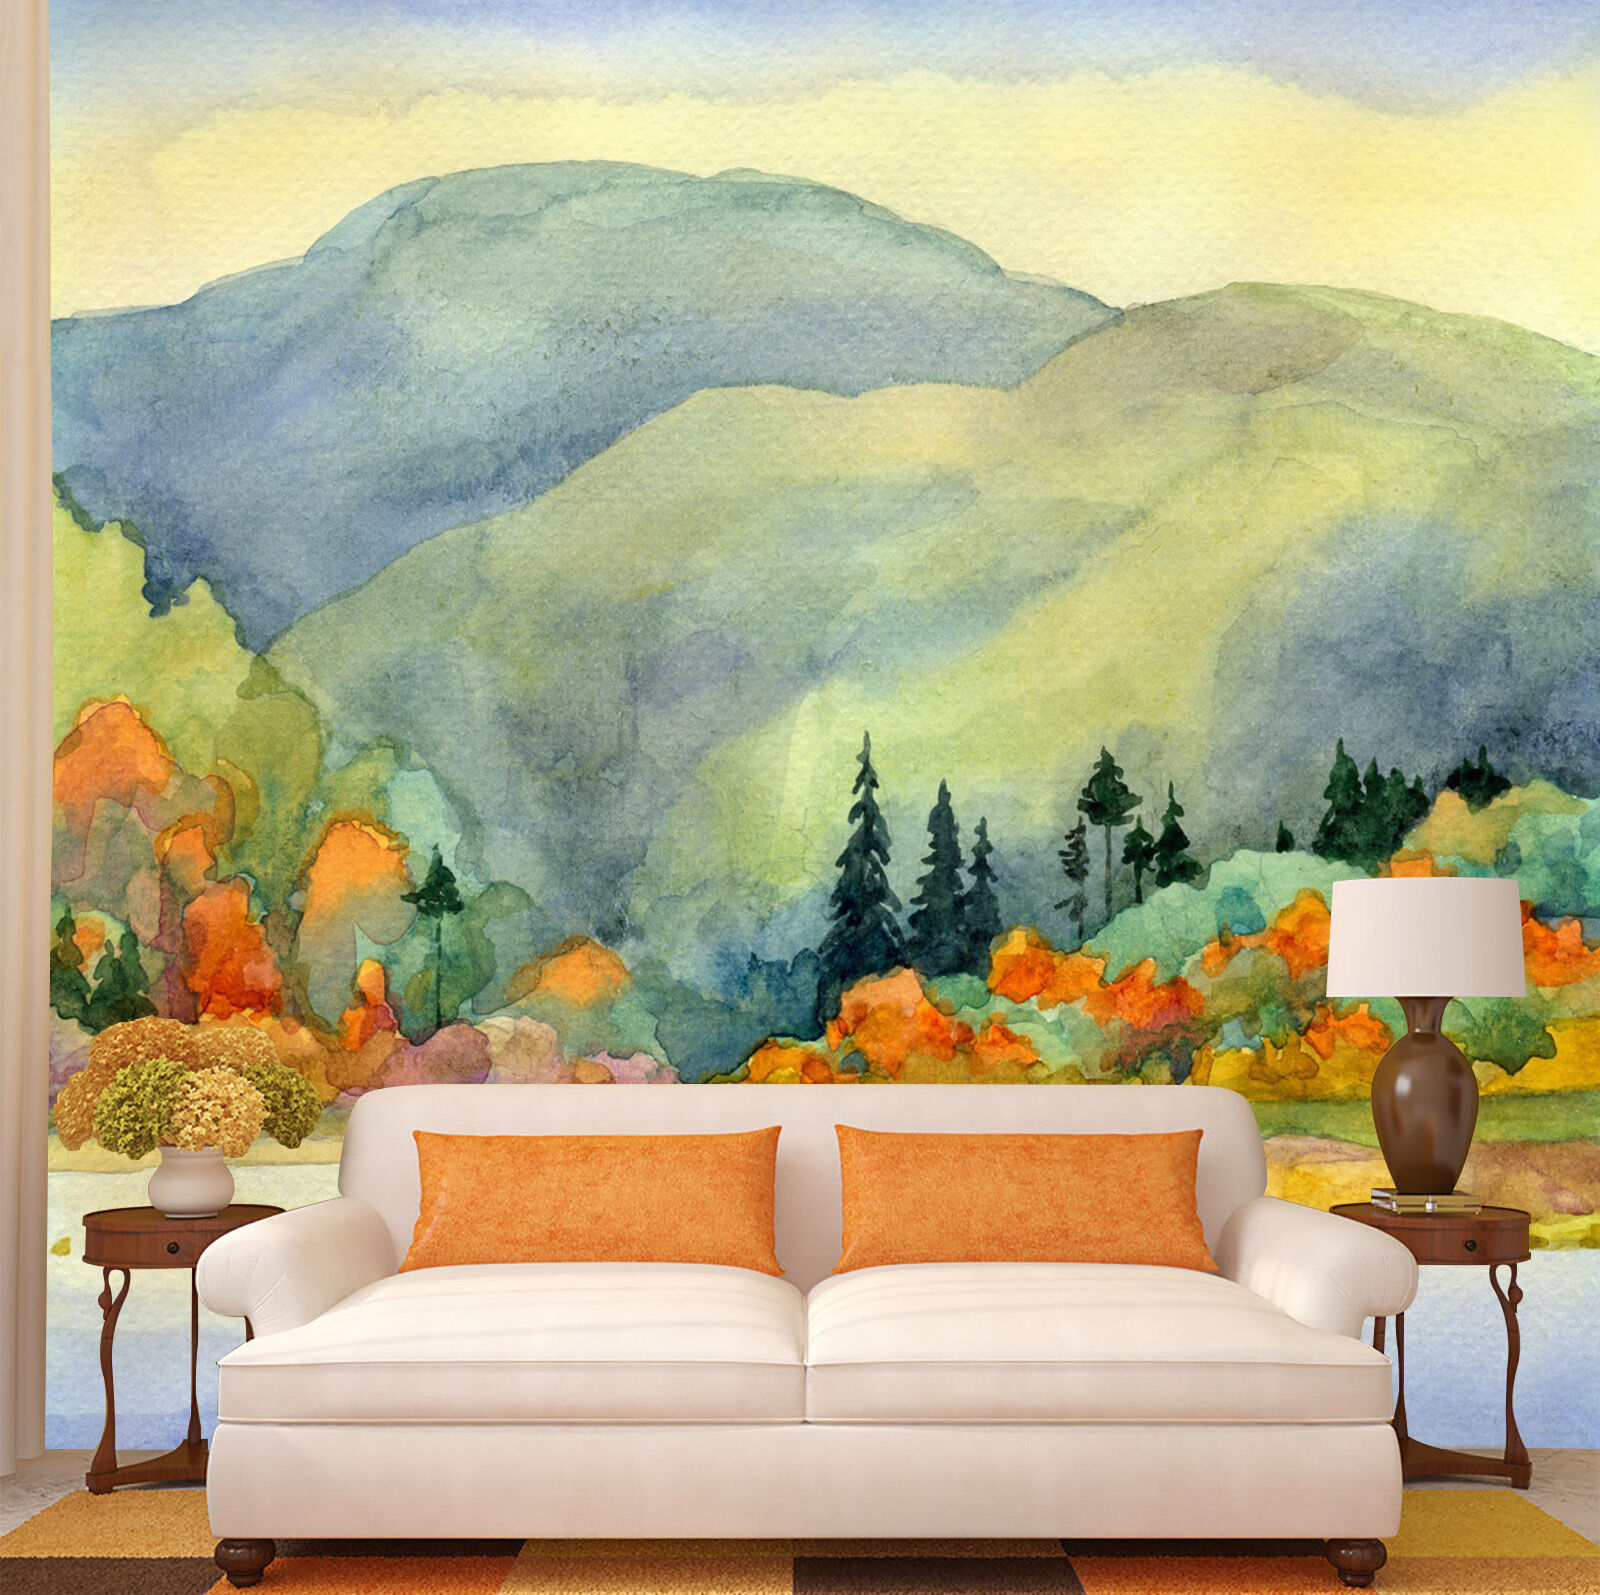 3D mountain peak trees paint wall Paper Print Decal Wall Deco Indoor wall Mural